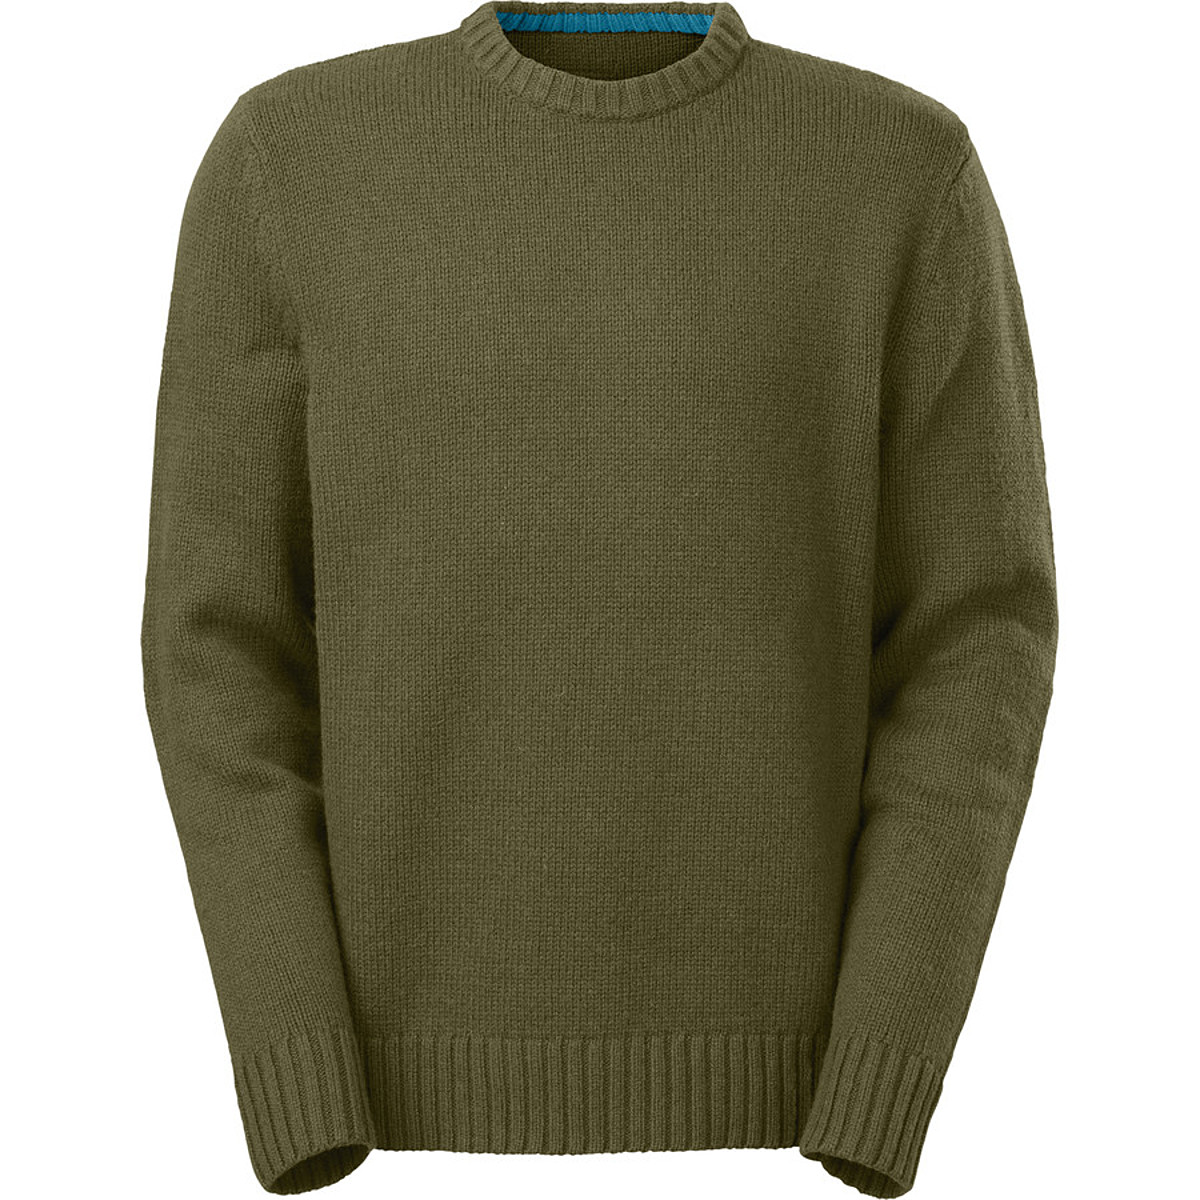 The North Face Edgefield Crew Sweater